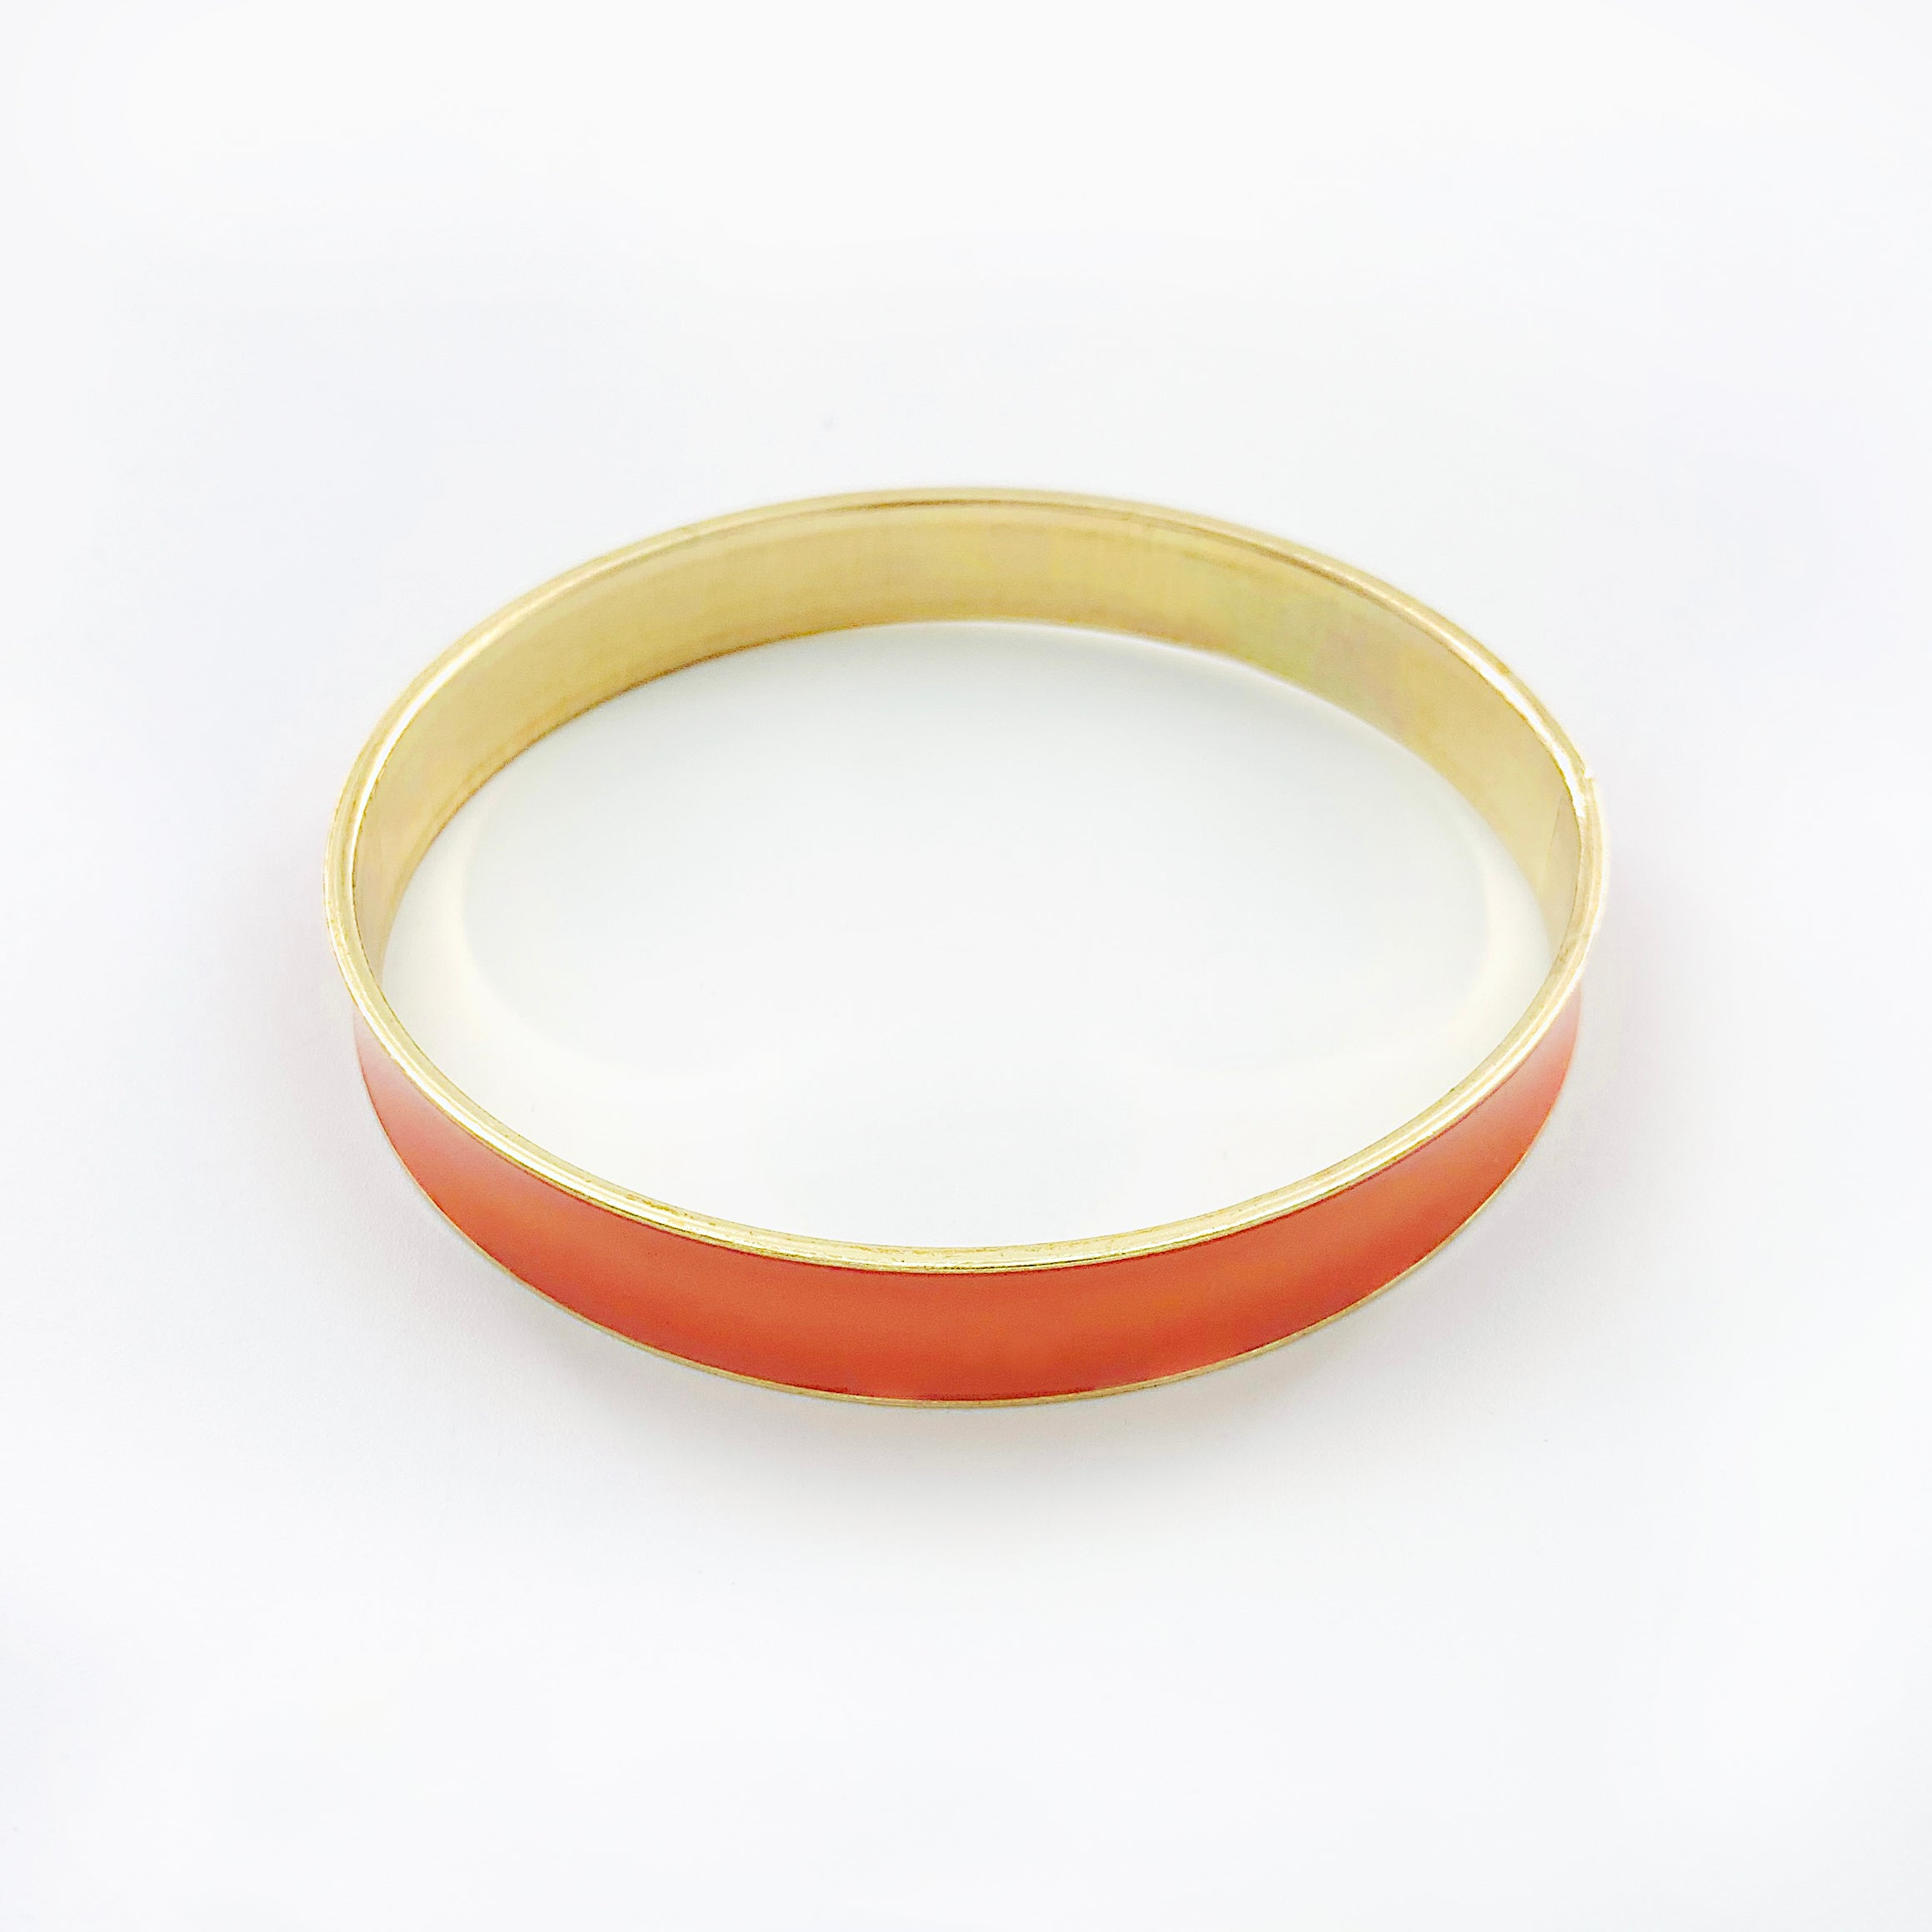 Coral pink and gold bangle with enamel finish